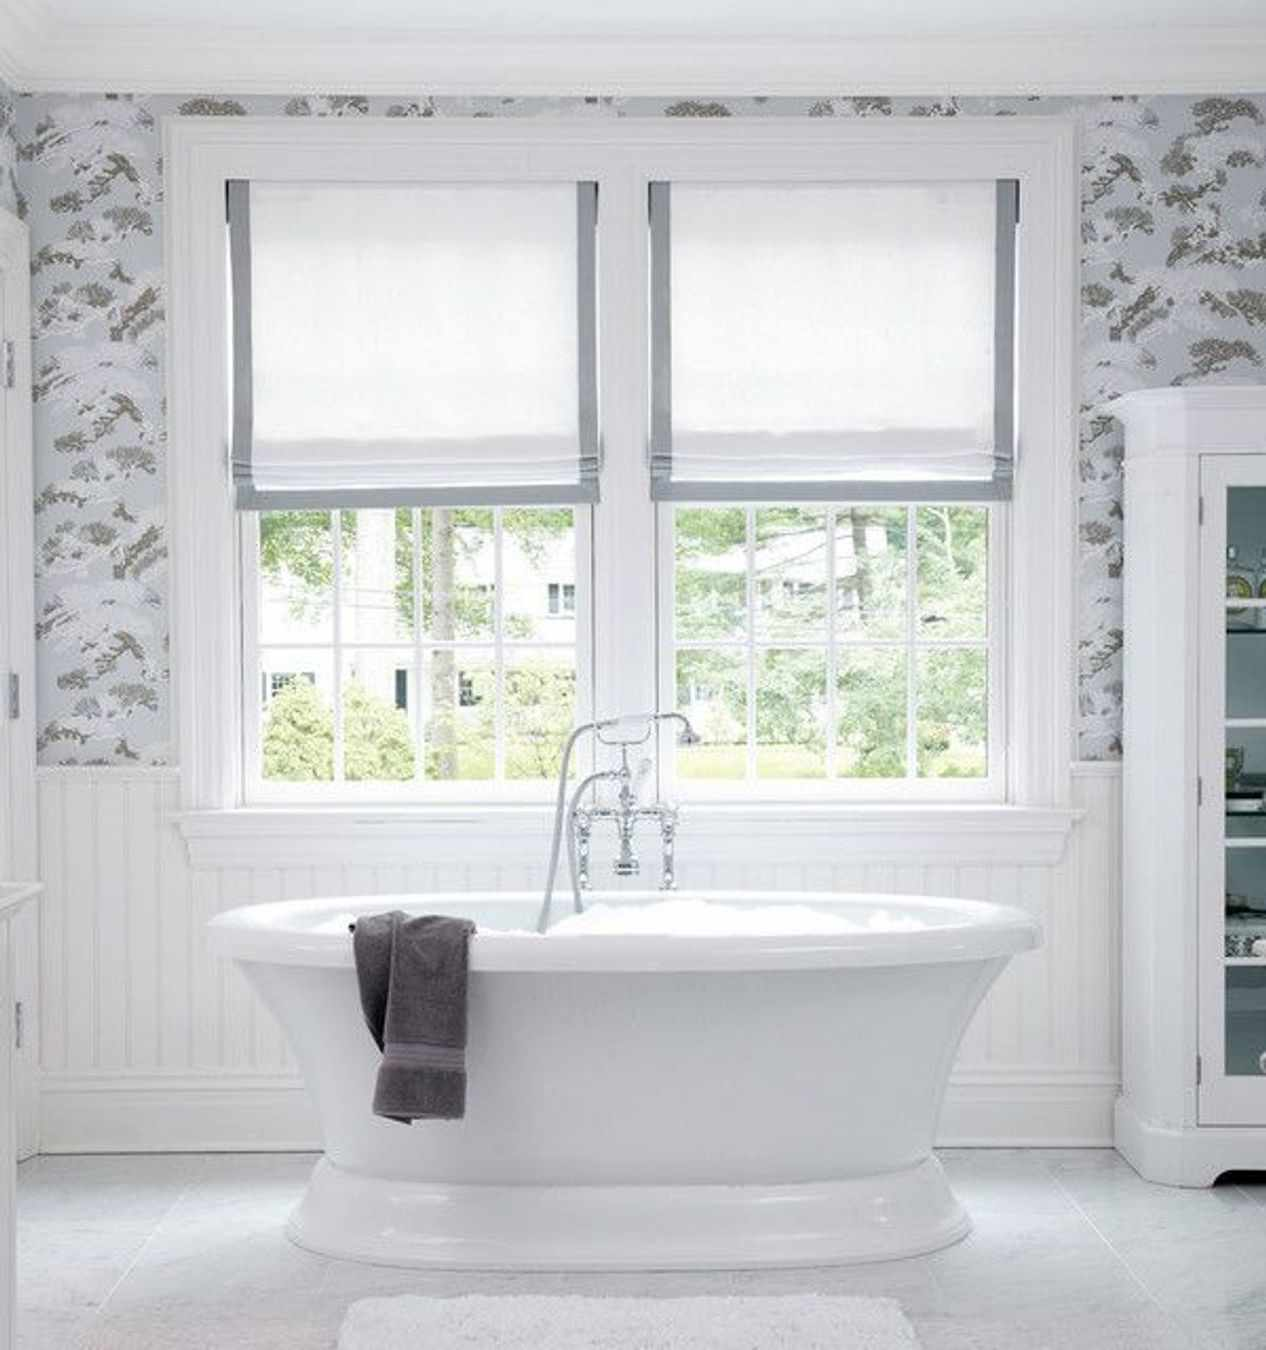 Frosted glass window bathroom - Grey Bathroom Curtains Nice White And Grey Roman Bathroom Window